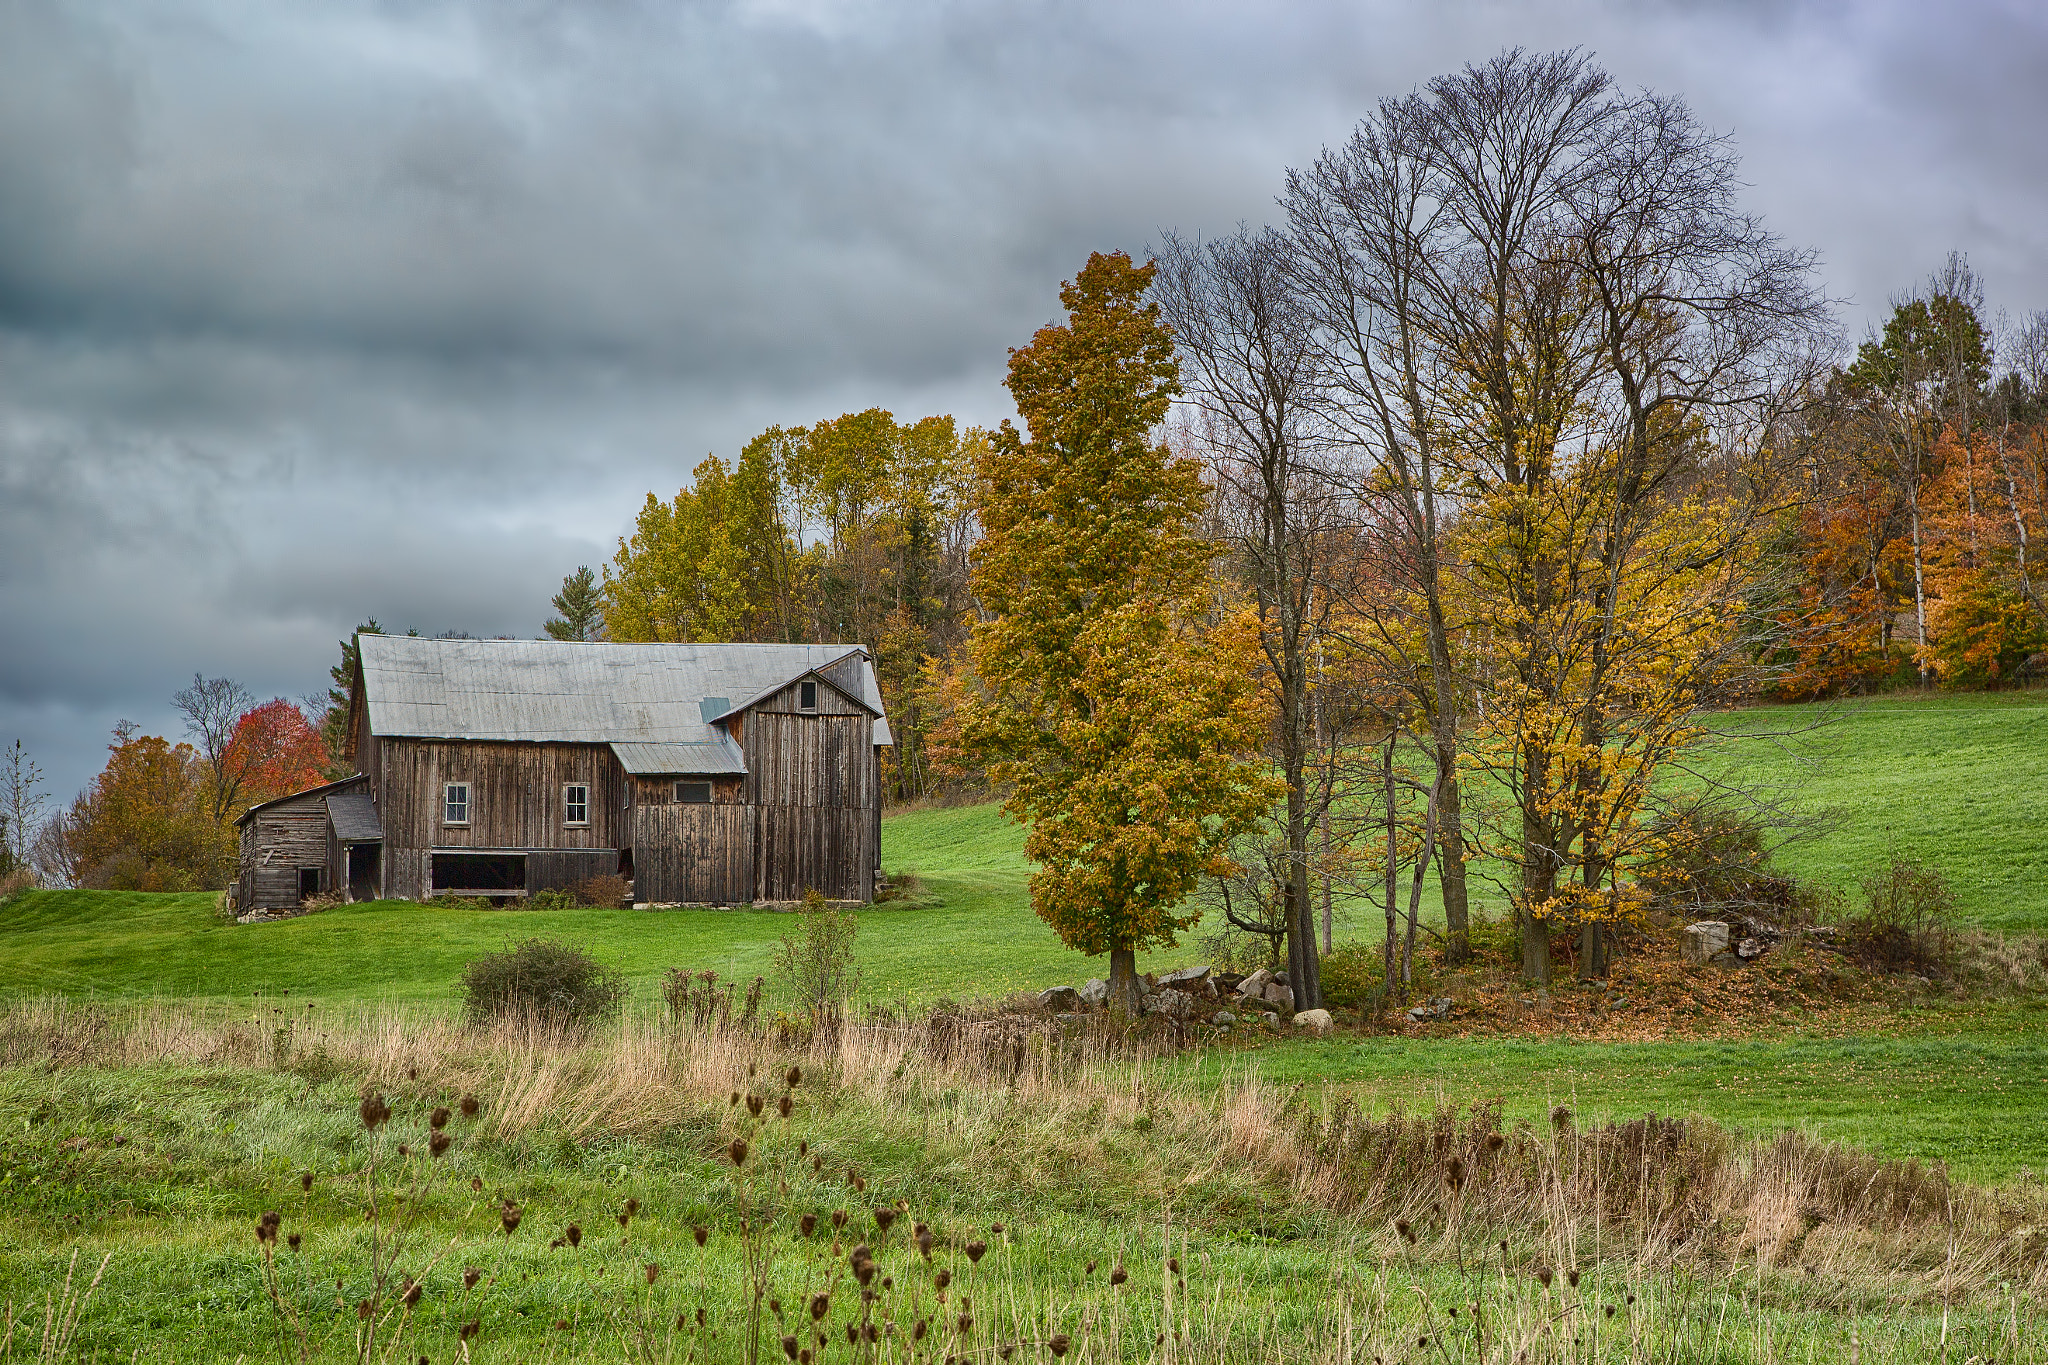 Photograph South Peacham Barn by Martin Belan on 500px